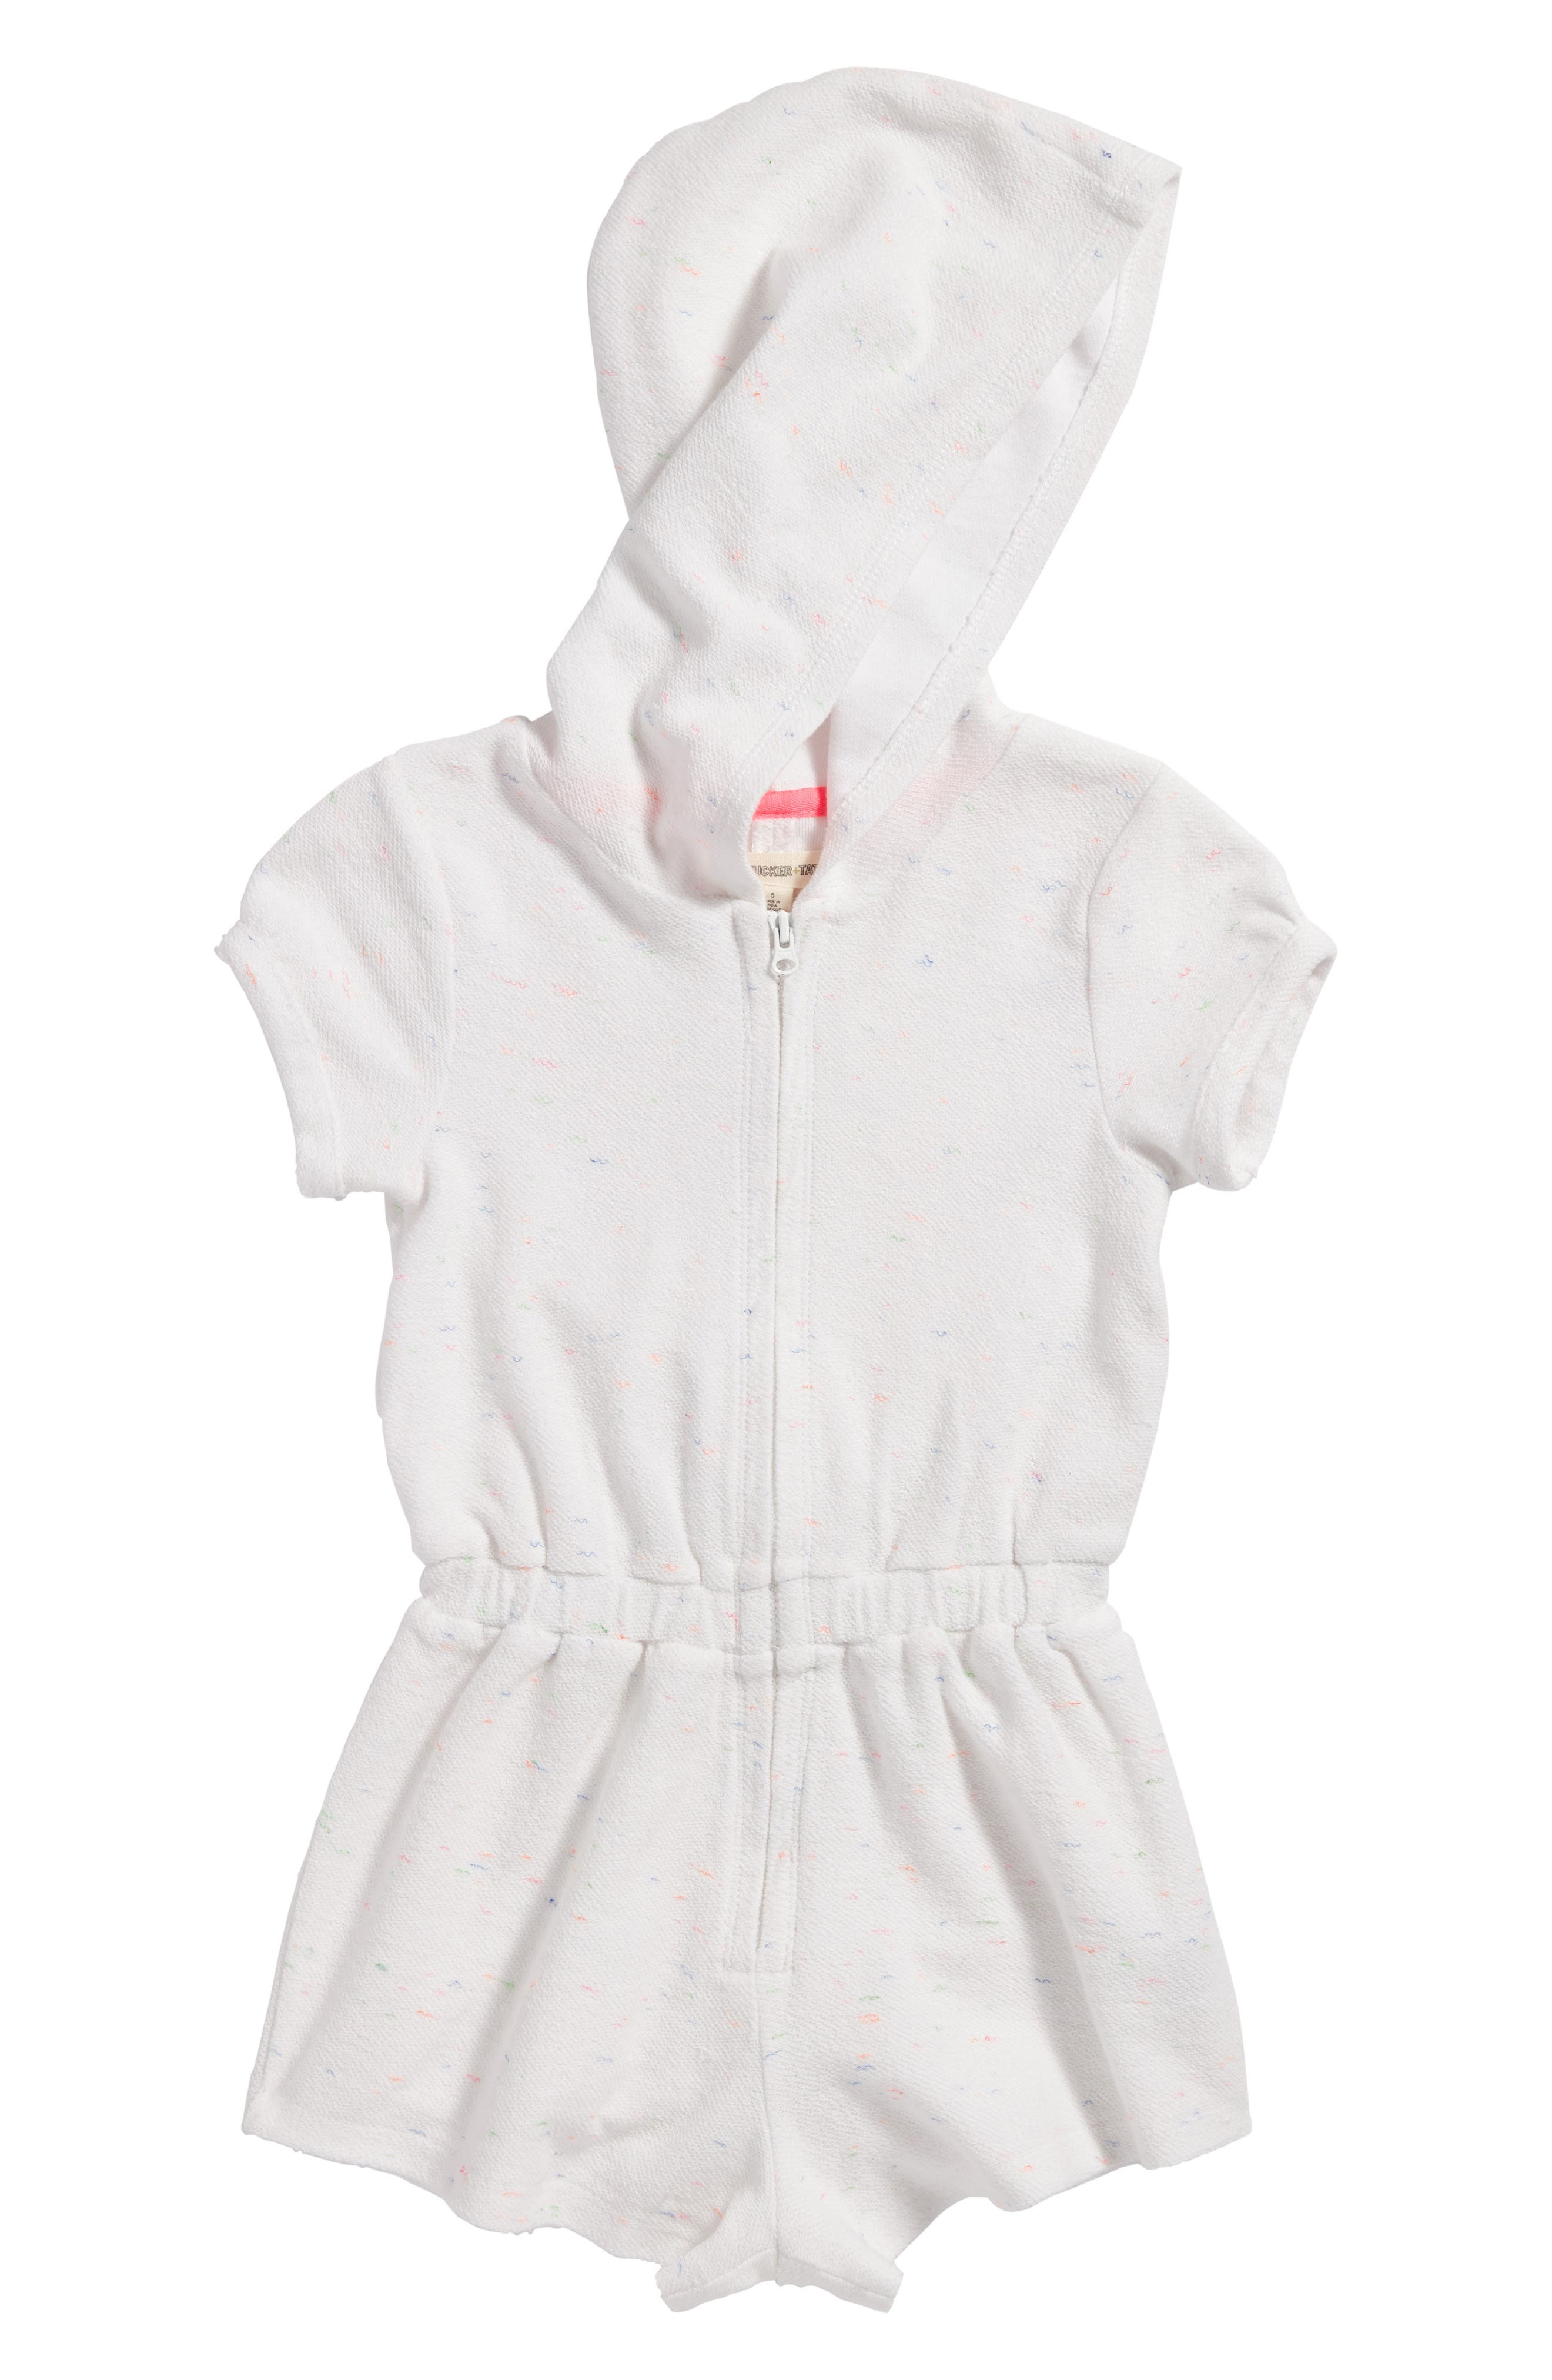 Terry Cover-Up Romper,                         Main,                         color, White